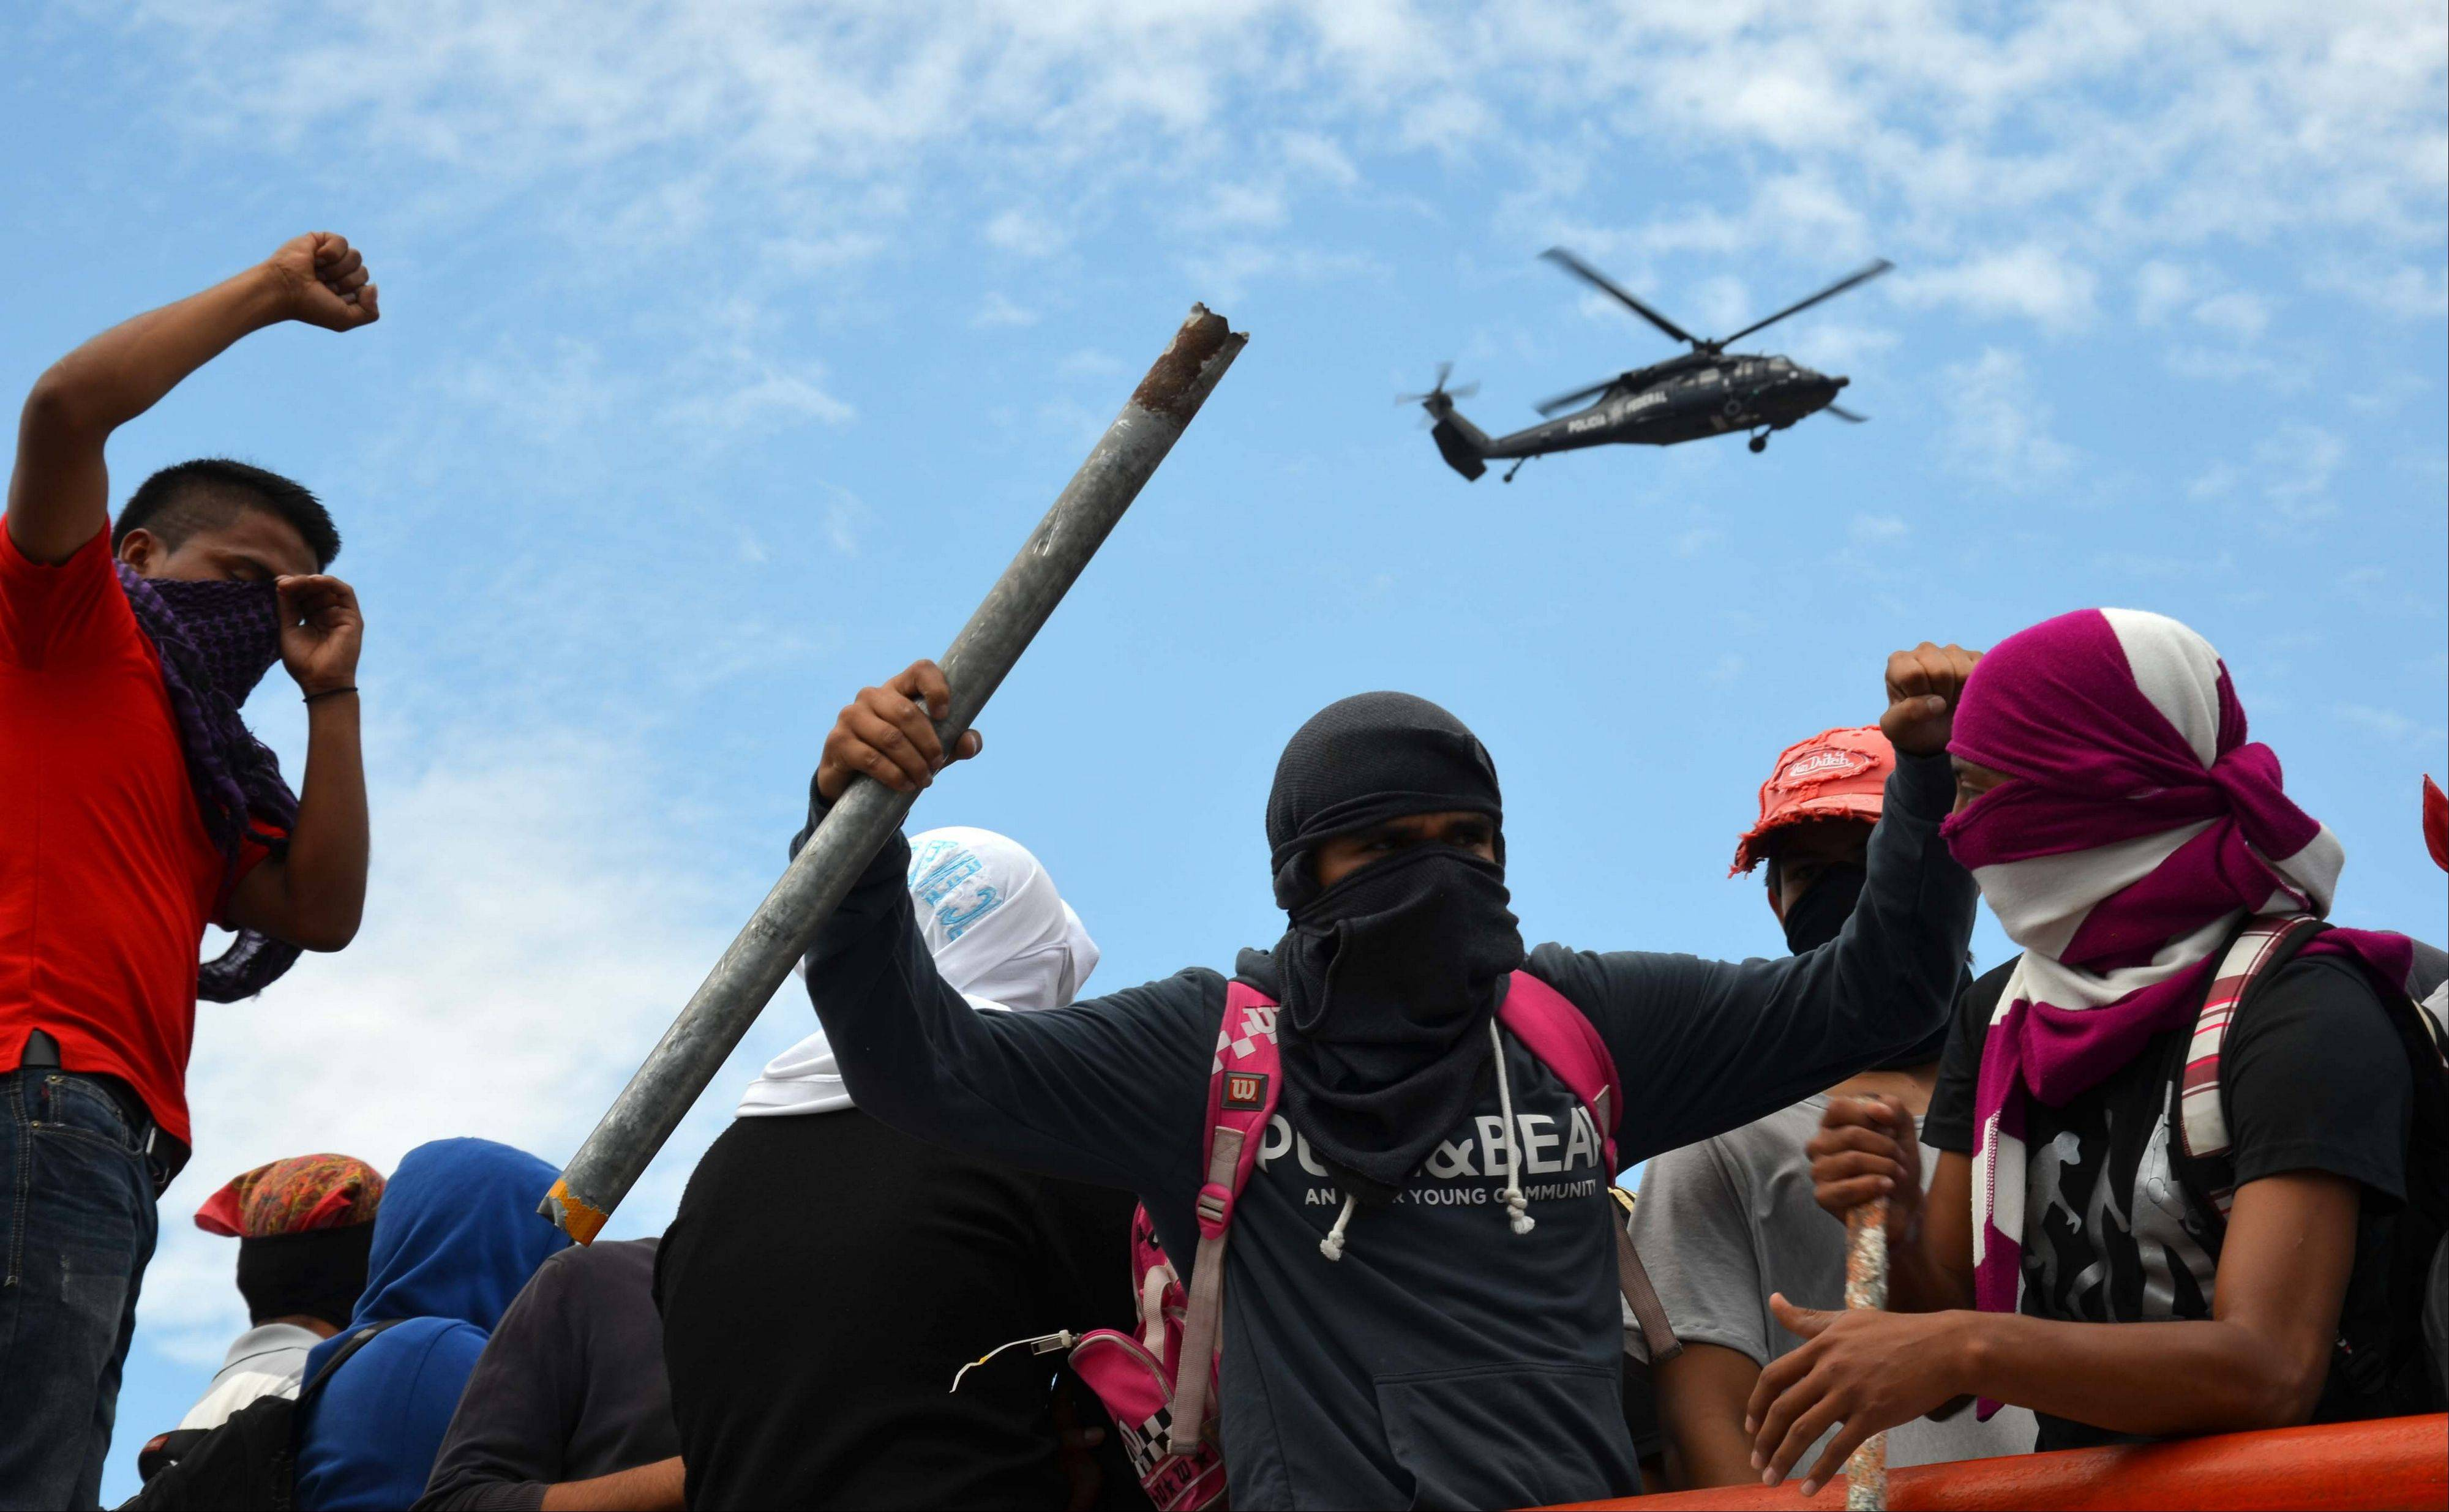 Young teachers block a major highway as they chant slogans, one holding a metal pipe, as a federal police helicopter flies overhead in Chilpancingo, Mexico, Thursday. The teachers, who are protesting an educational reform that will submit them to evaluation and loosen union control over hiring and firing, left peacefully after negotiating with police.